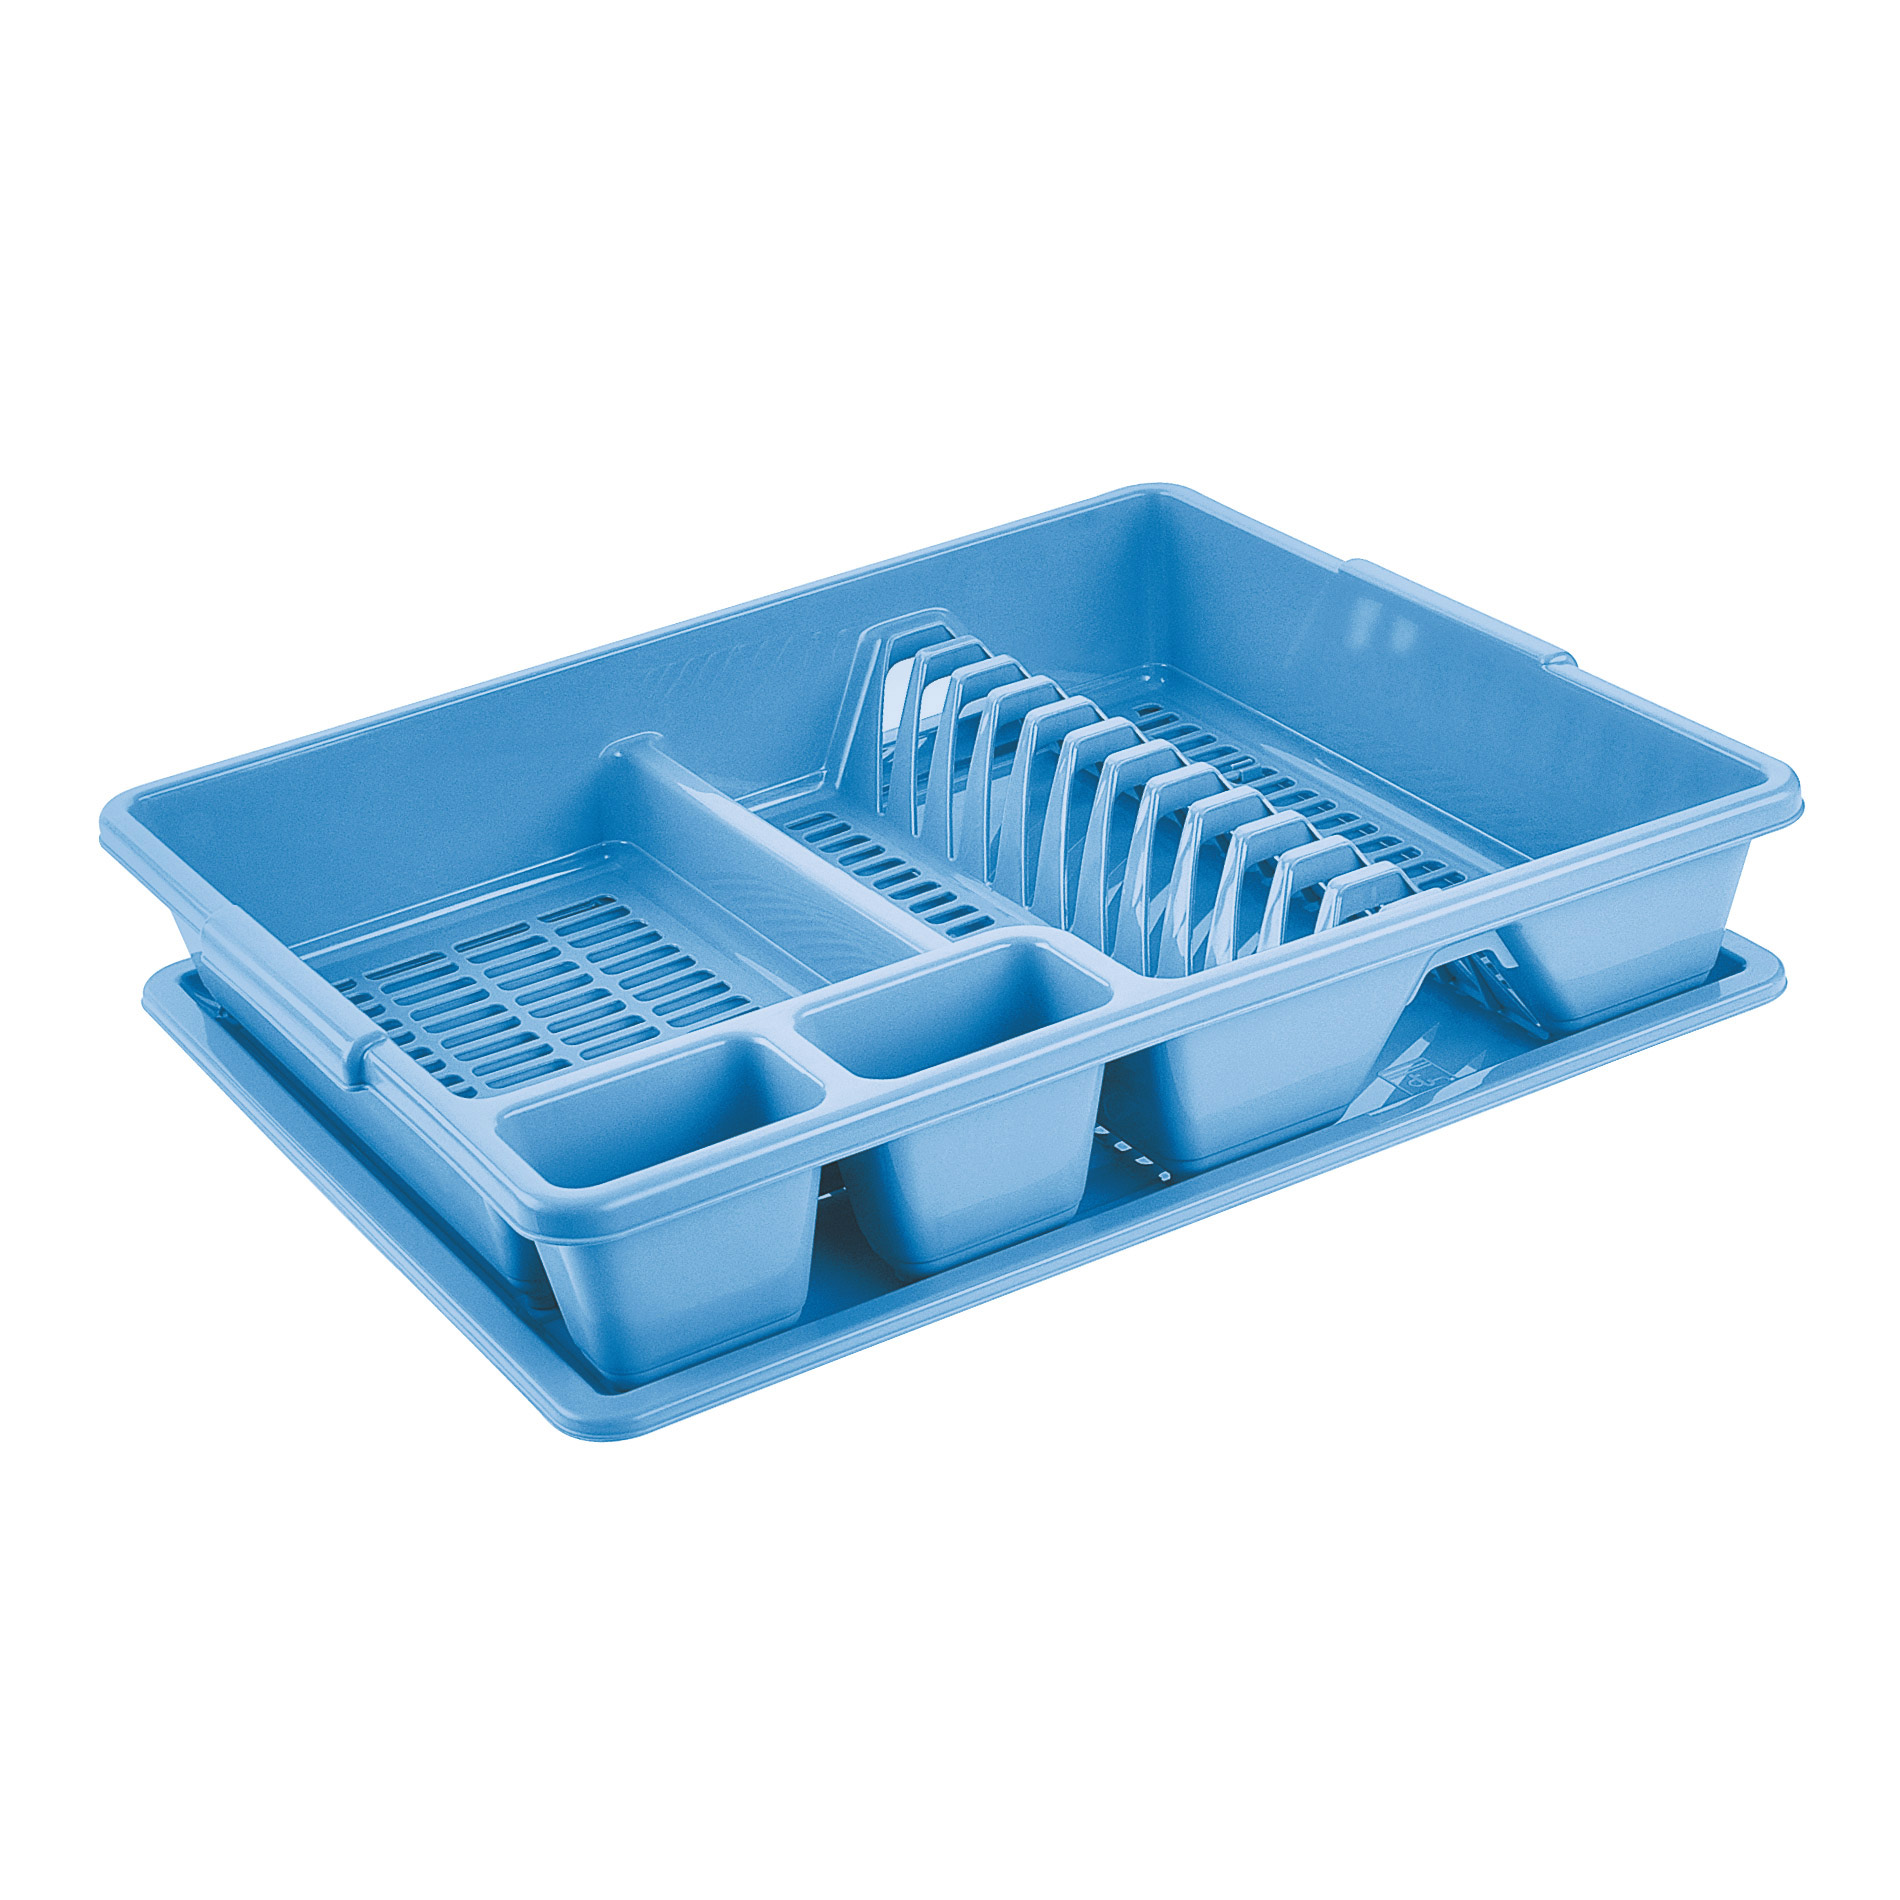 Tontarelli Shop - LARGE DISH DRAINER WITH DRIP TRAY